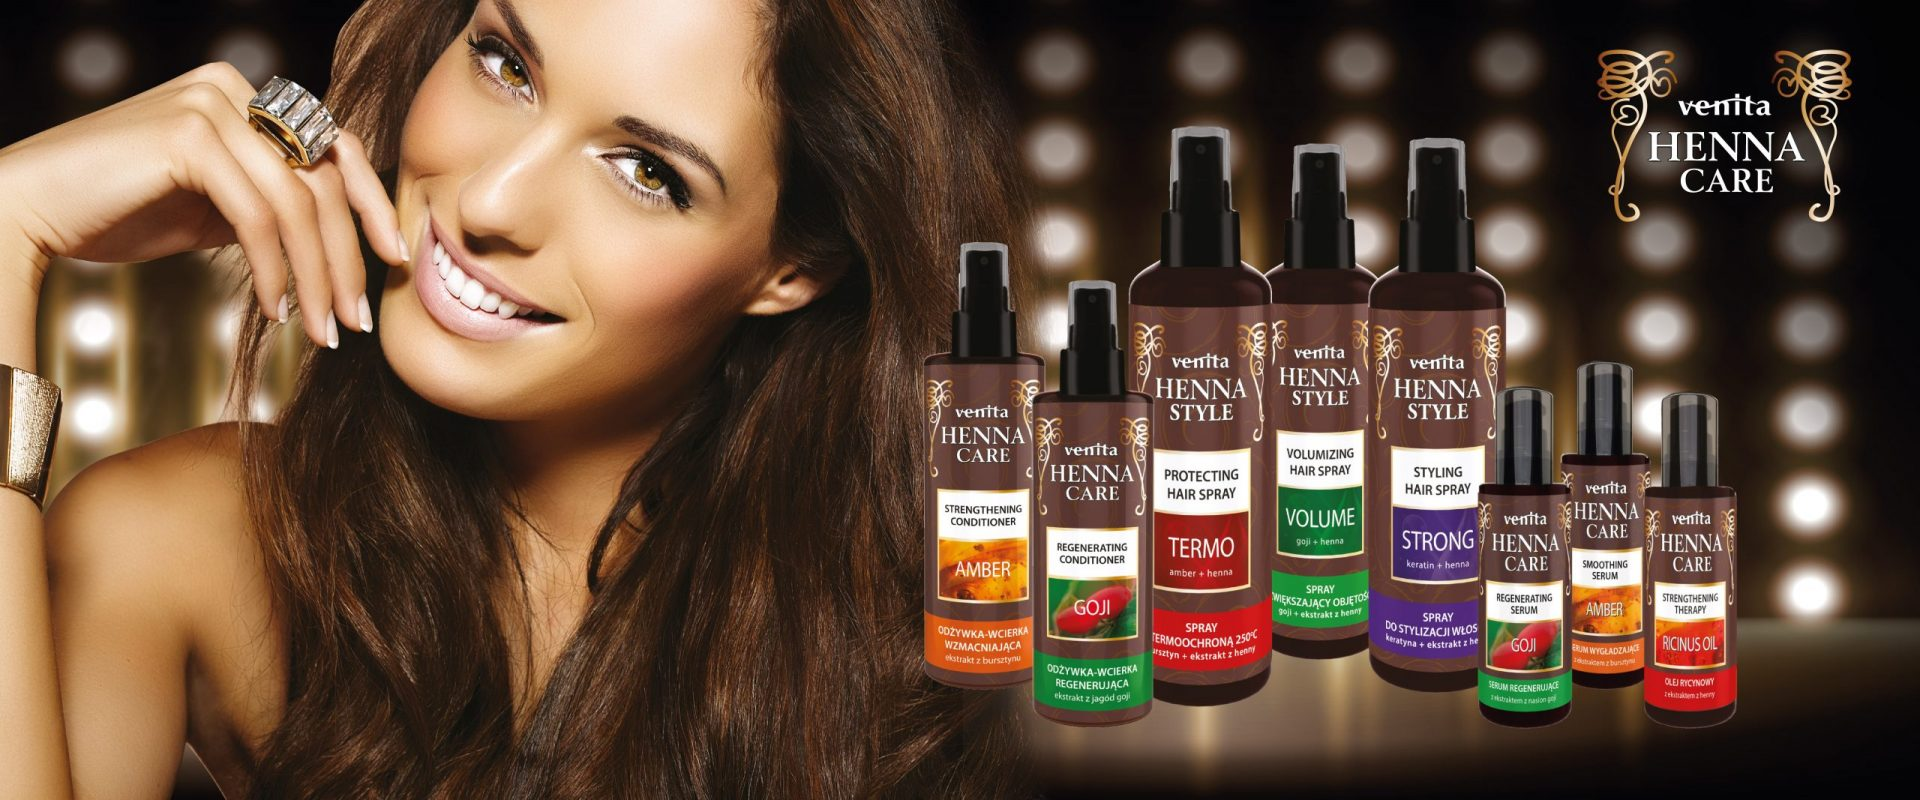 There is a beautiful woman presenting hair care products